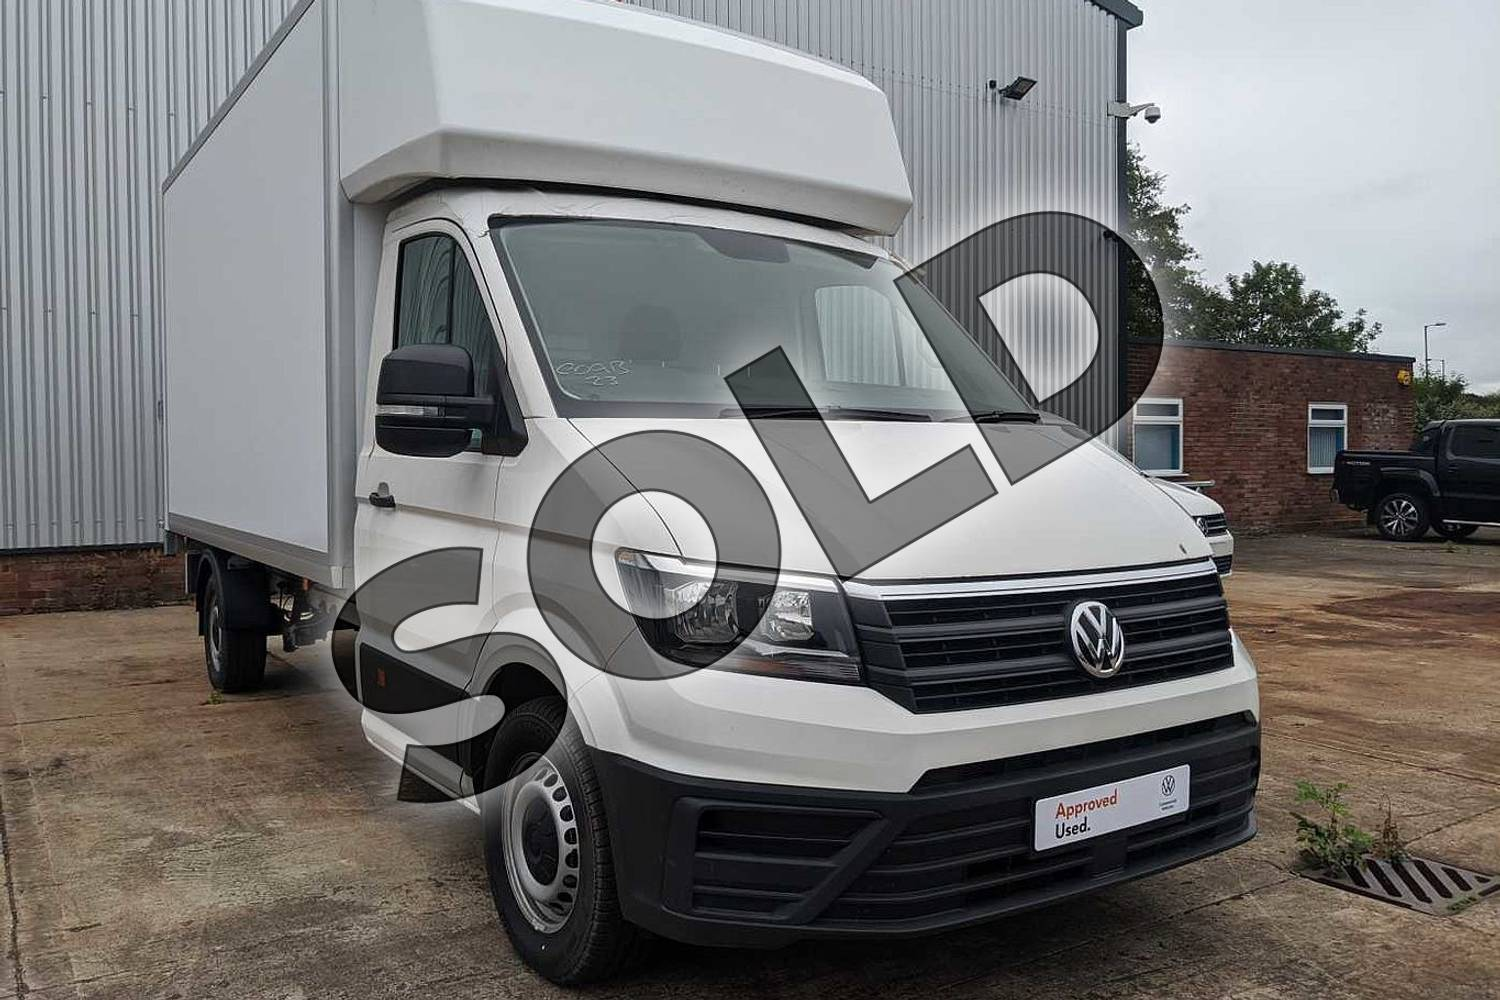 2020 Volkswagen Crafter CR35 LWB Diesel 2.0 TDI 177PS Startline Double Cab Chassis in Candy White at Listers Volkswagen Van Centre Worcestershire